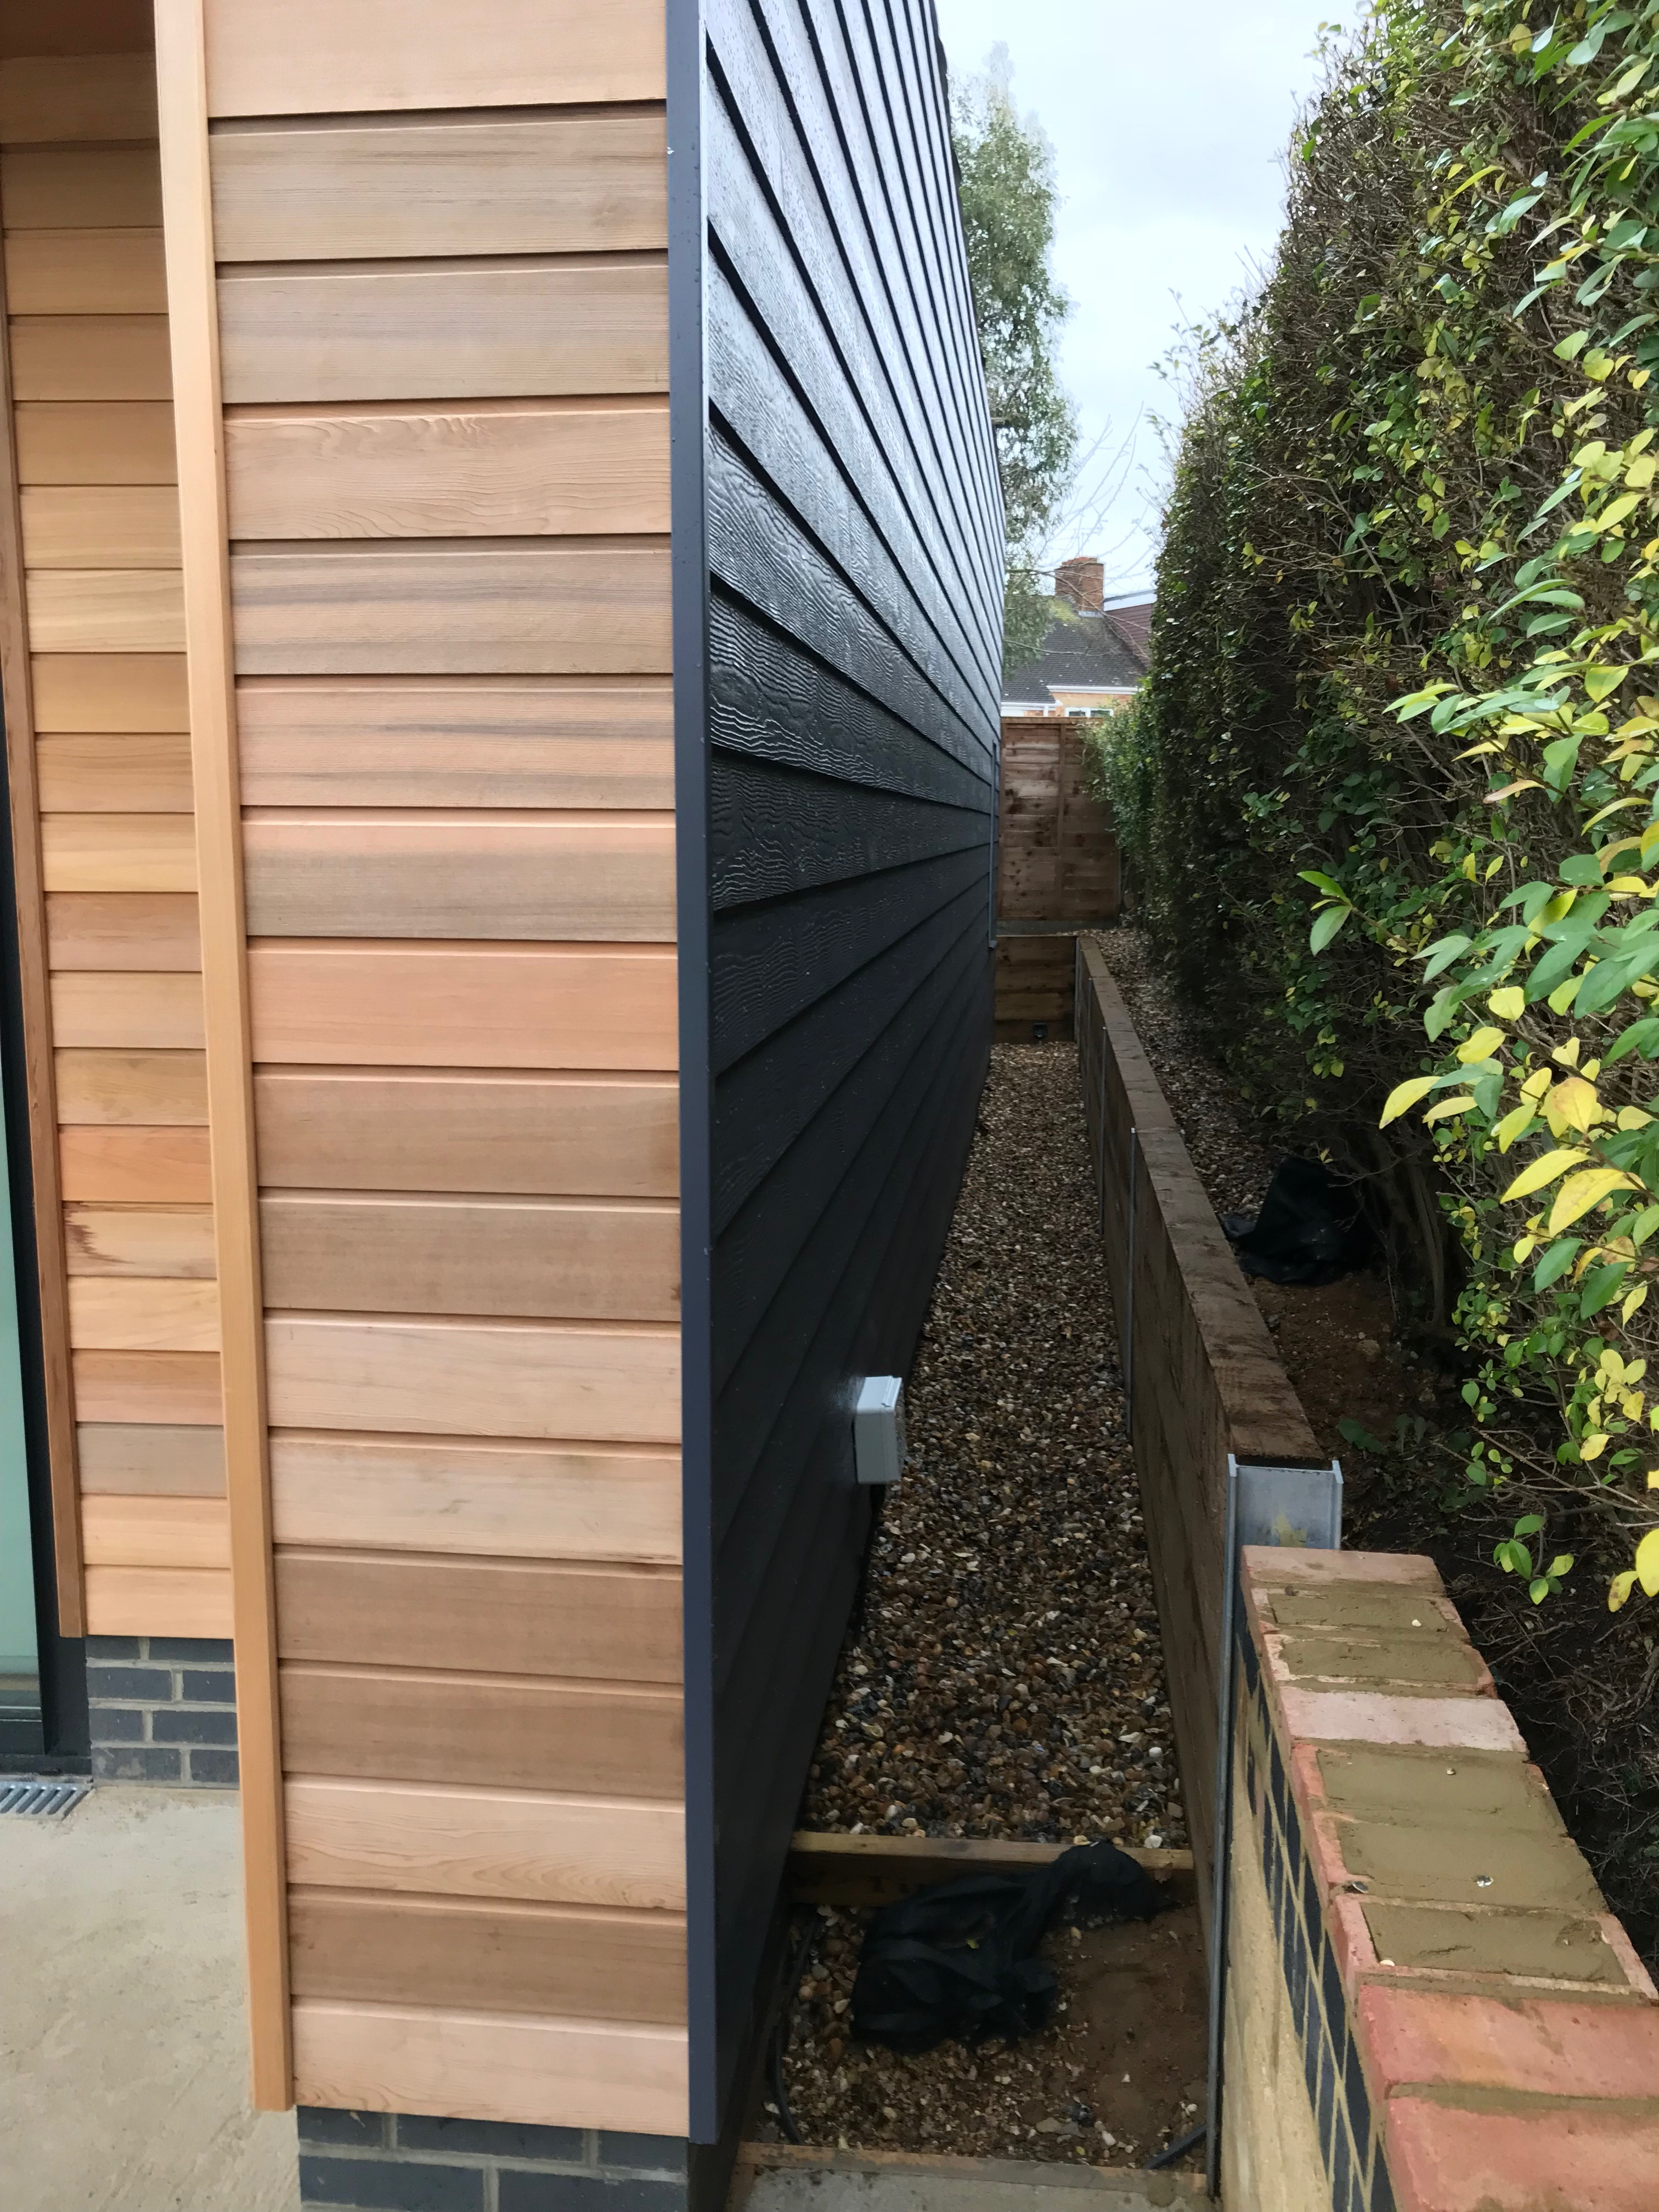 Western Red Cedar Channel Groove St10 Southgate Timber